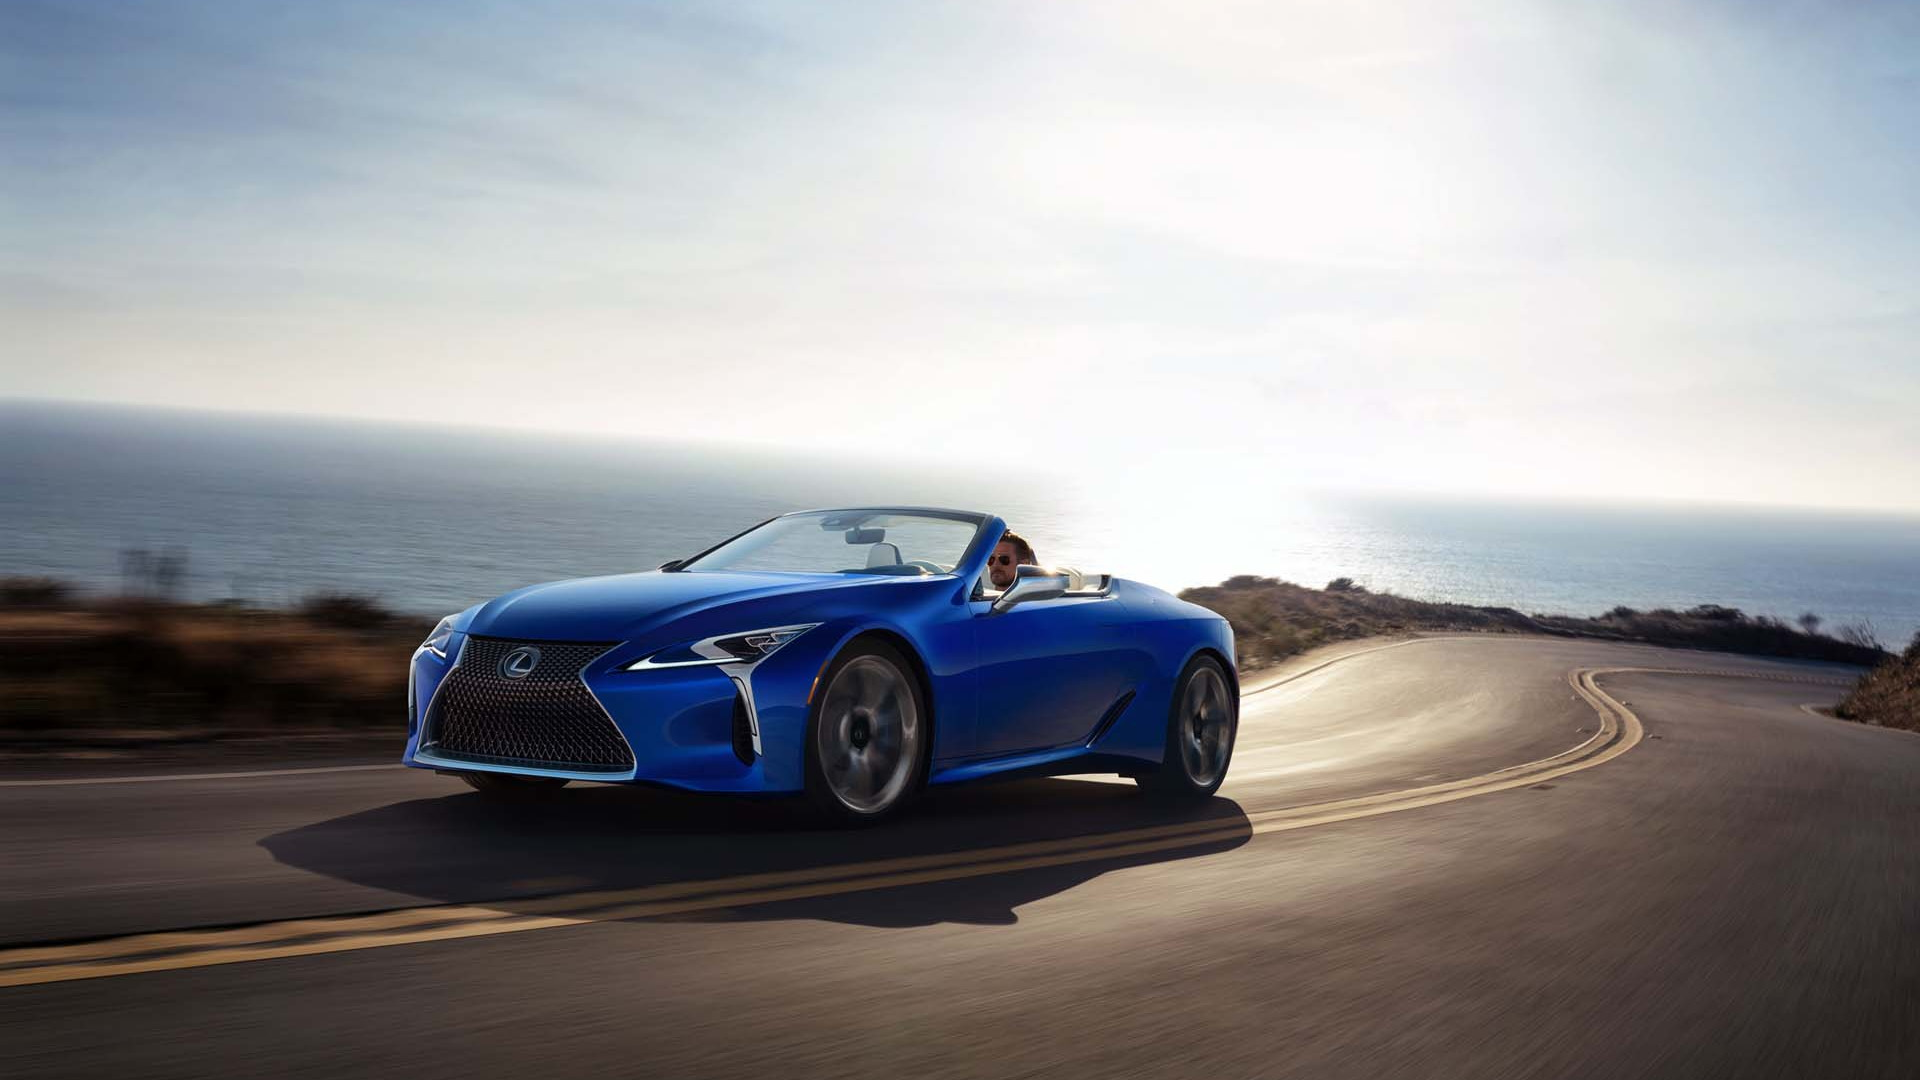 2021 Lexus LC Inspiration Series Launch Exclusive 1 of 1